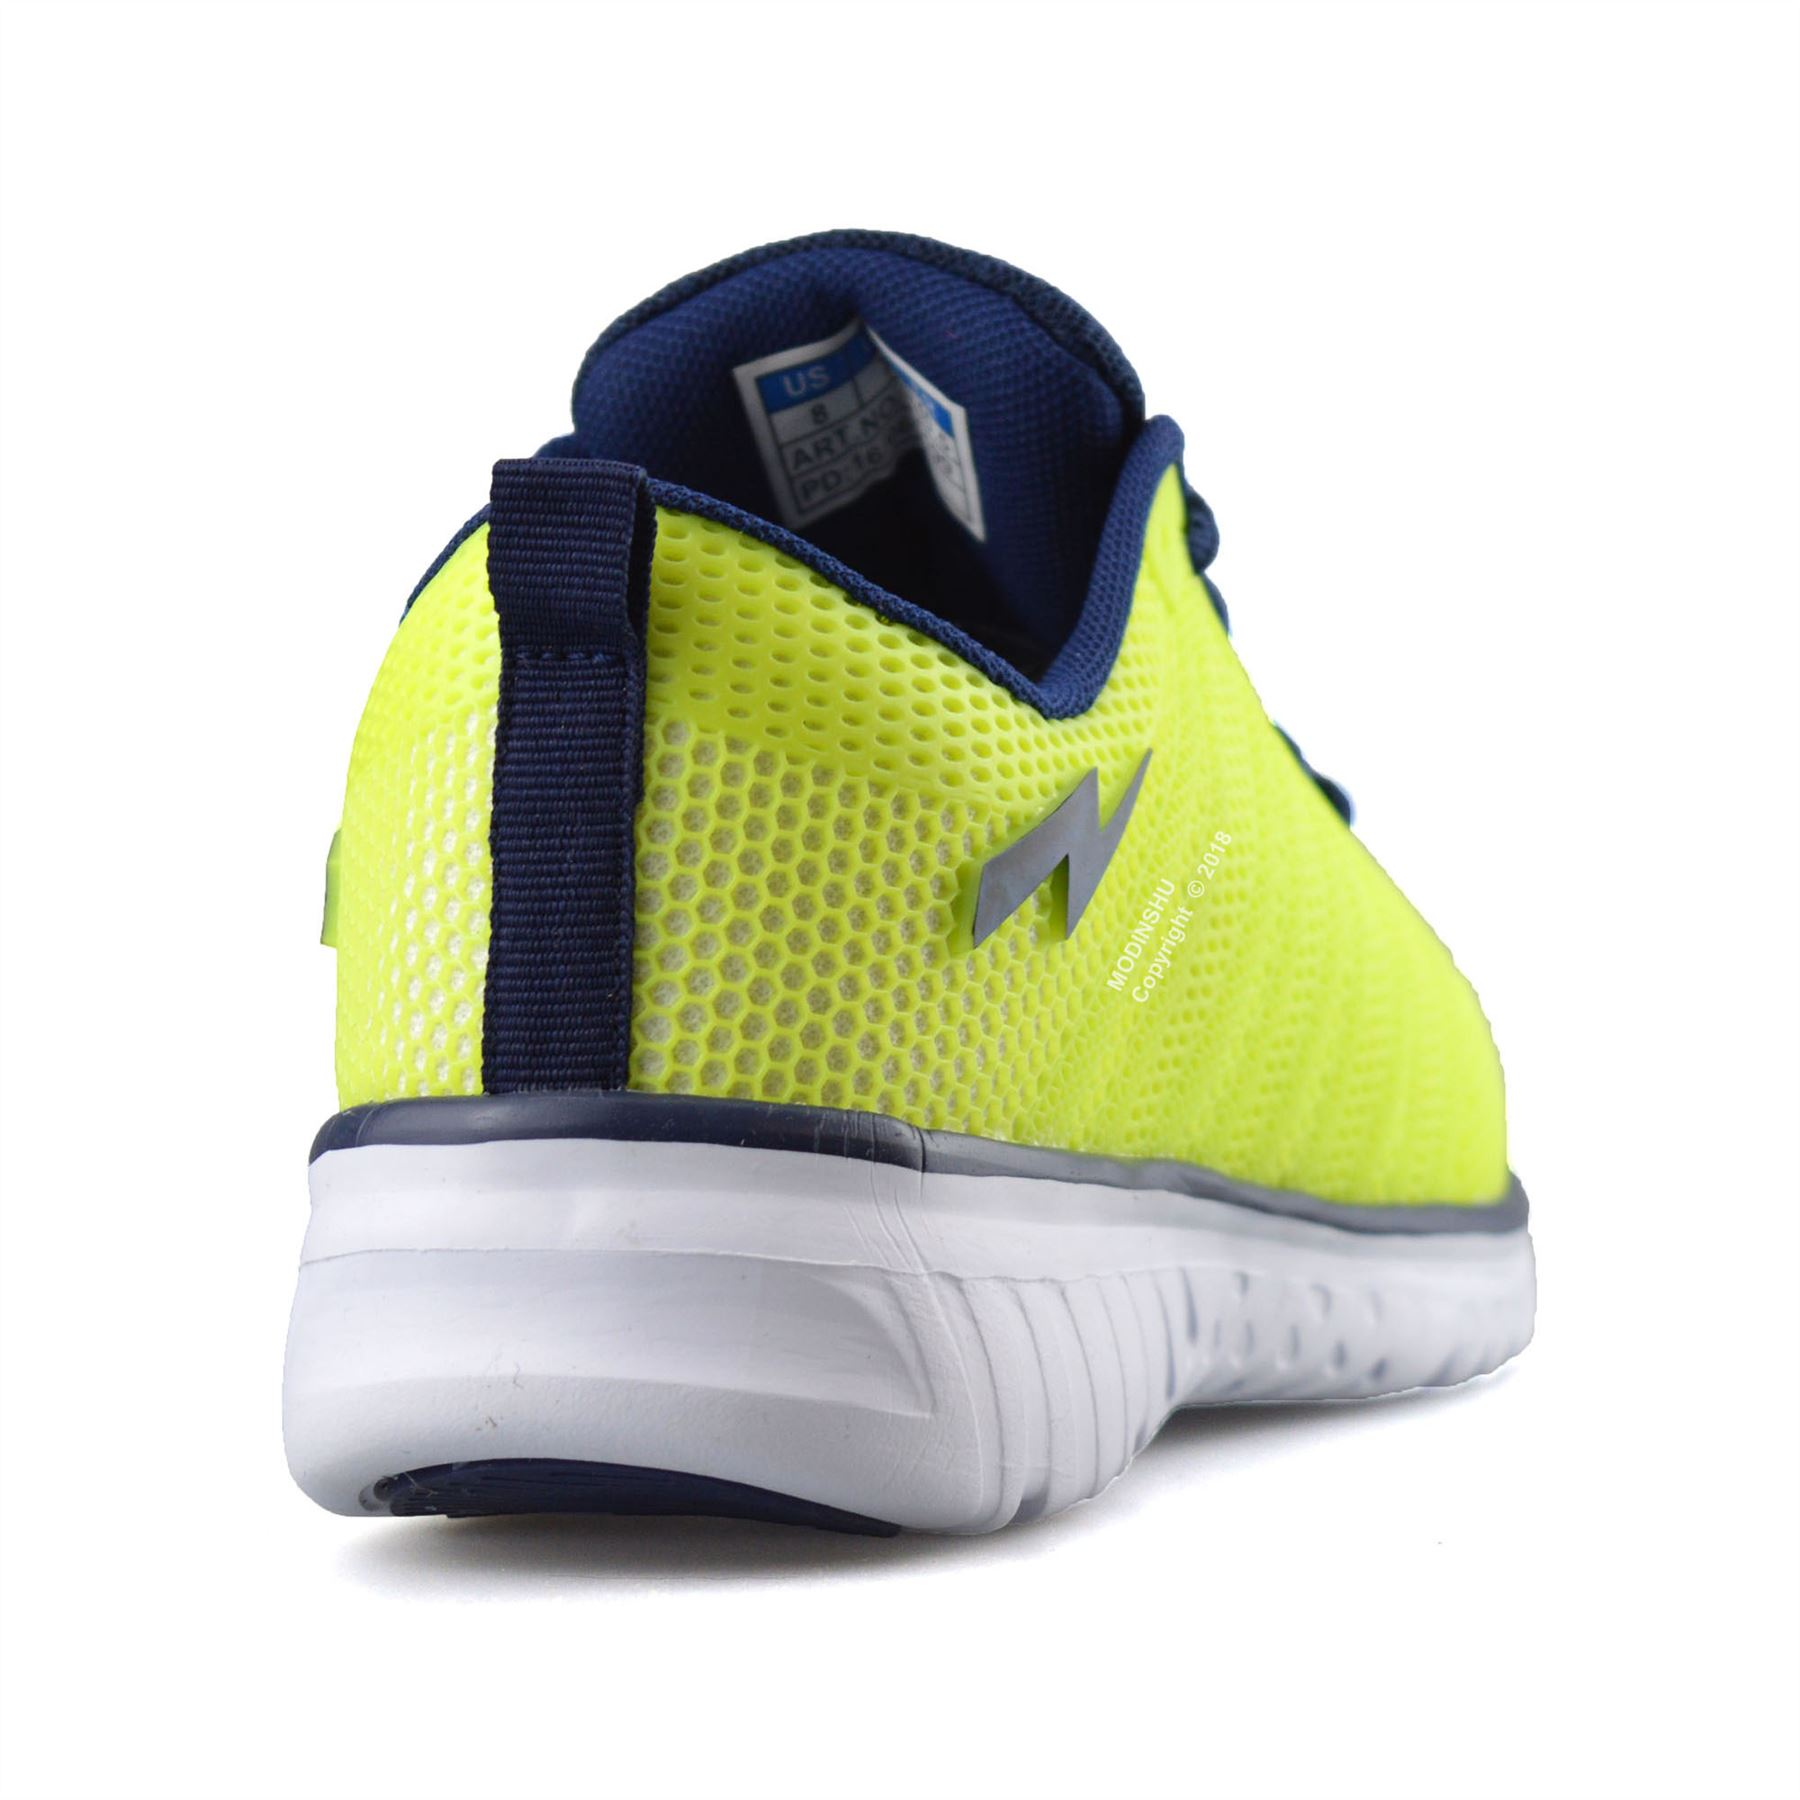 Mens-Casual-Running-Walking-Sports-Gym-Shock-Absorbing-Lace-Trainers-Shoes-Size thumbnail 21